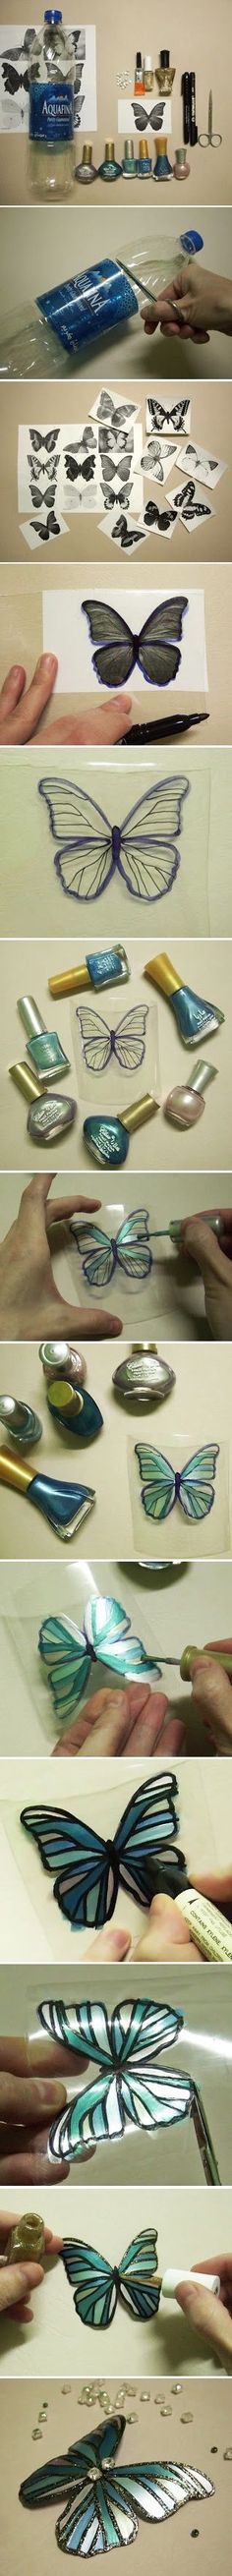 Make Decorations Using Plastic Bottles. Genius!!